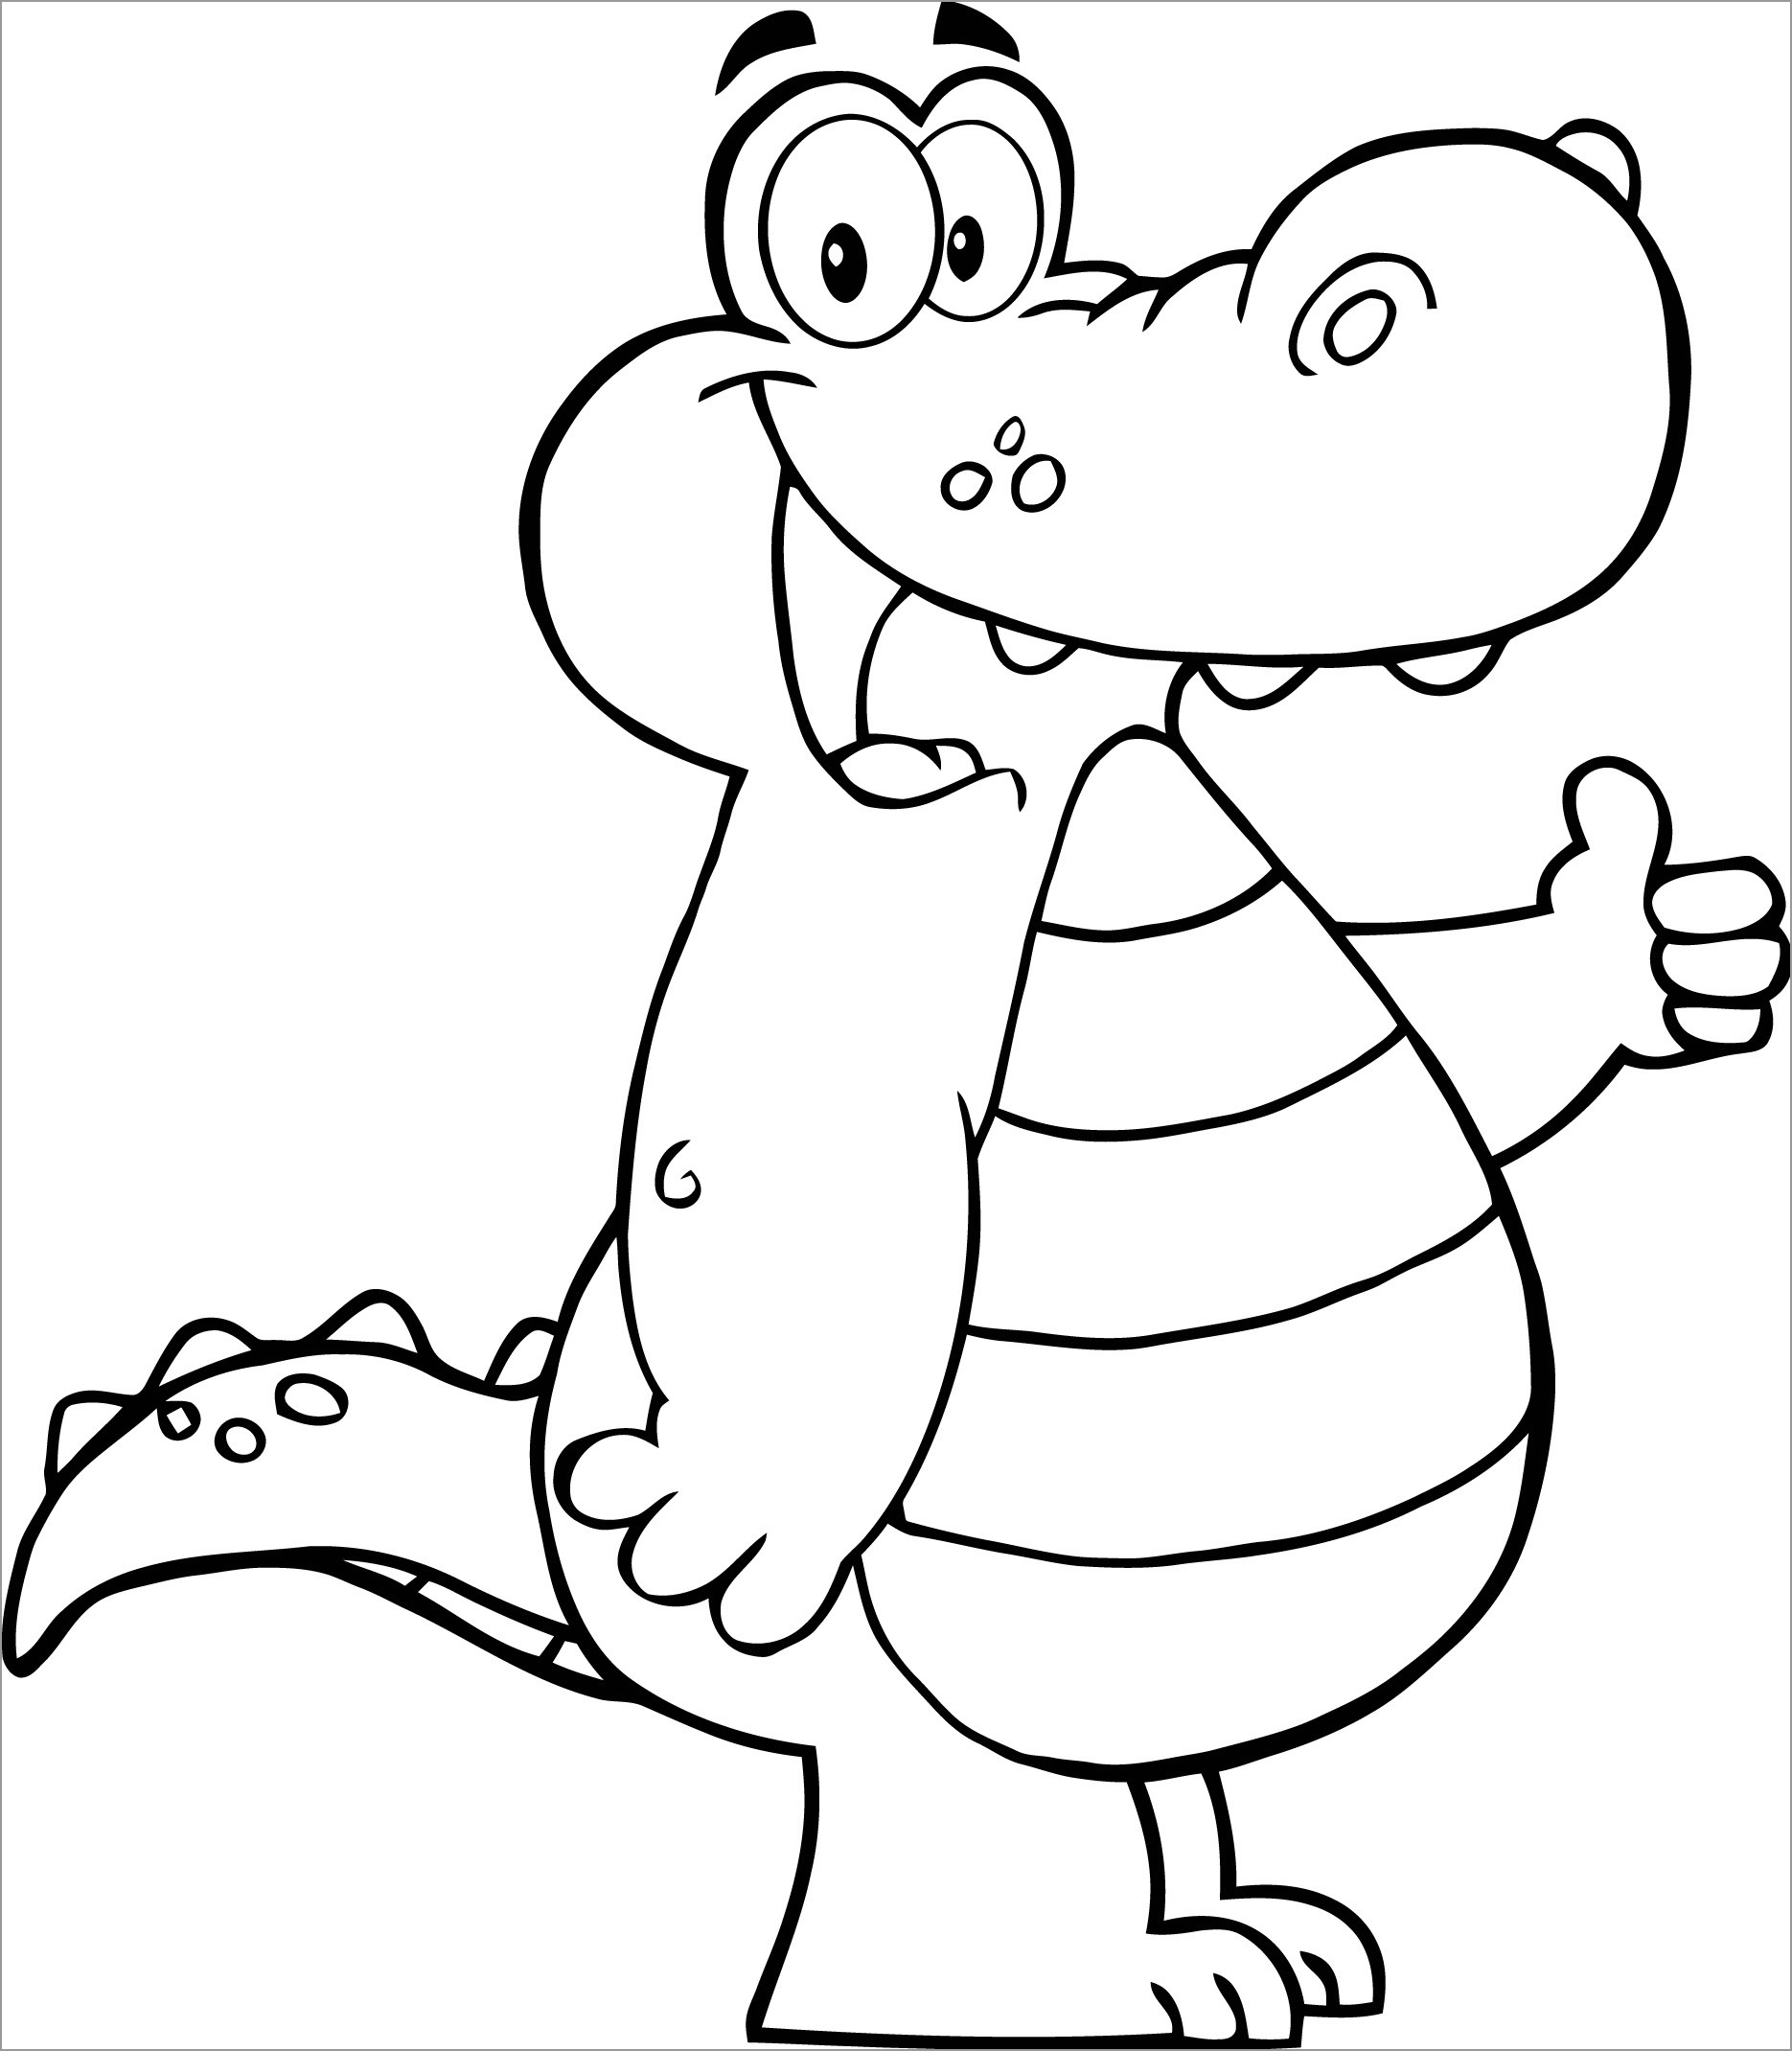 Coloring Page Alligator Alligator Showing Thumbs Up Coloring Page Coloringbay